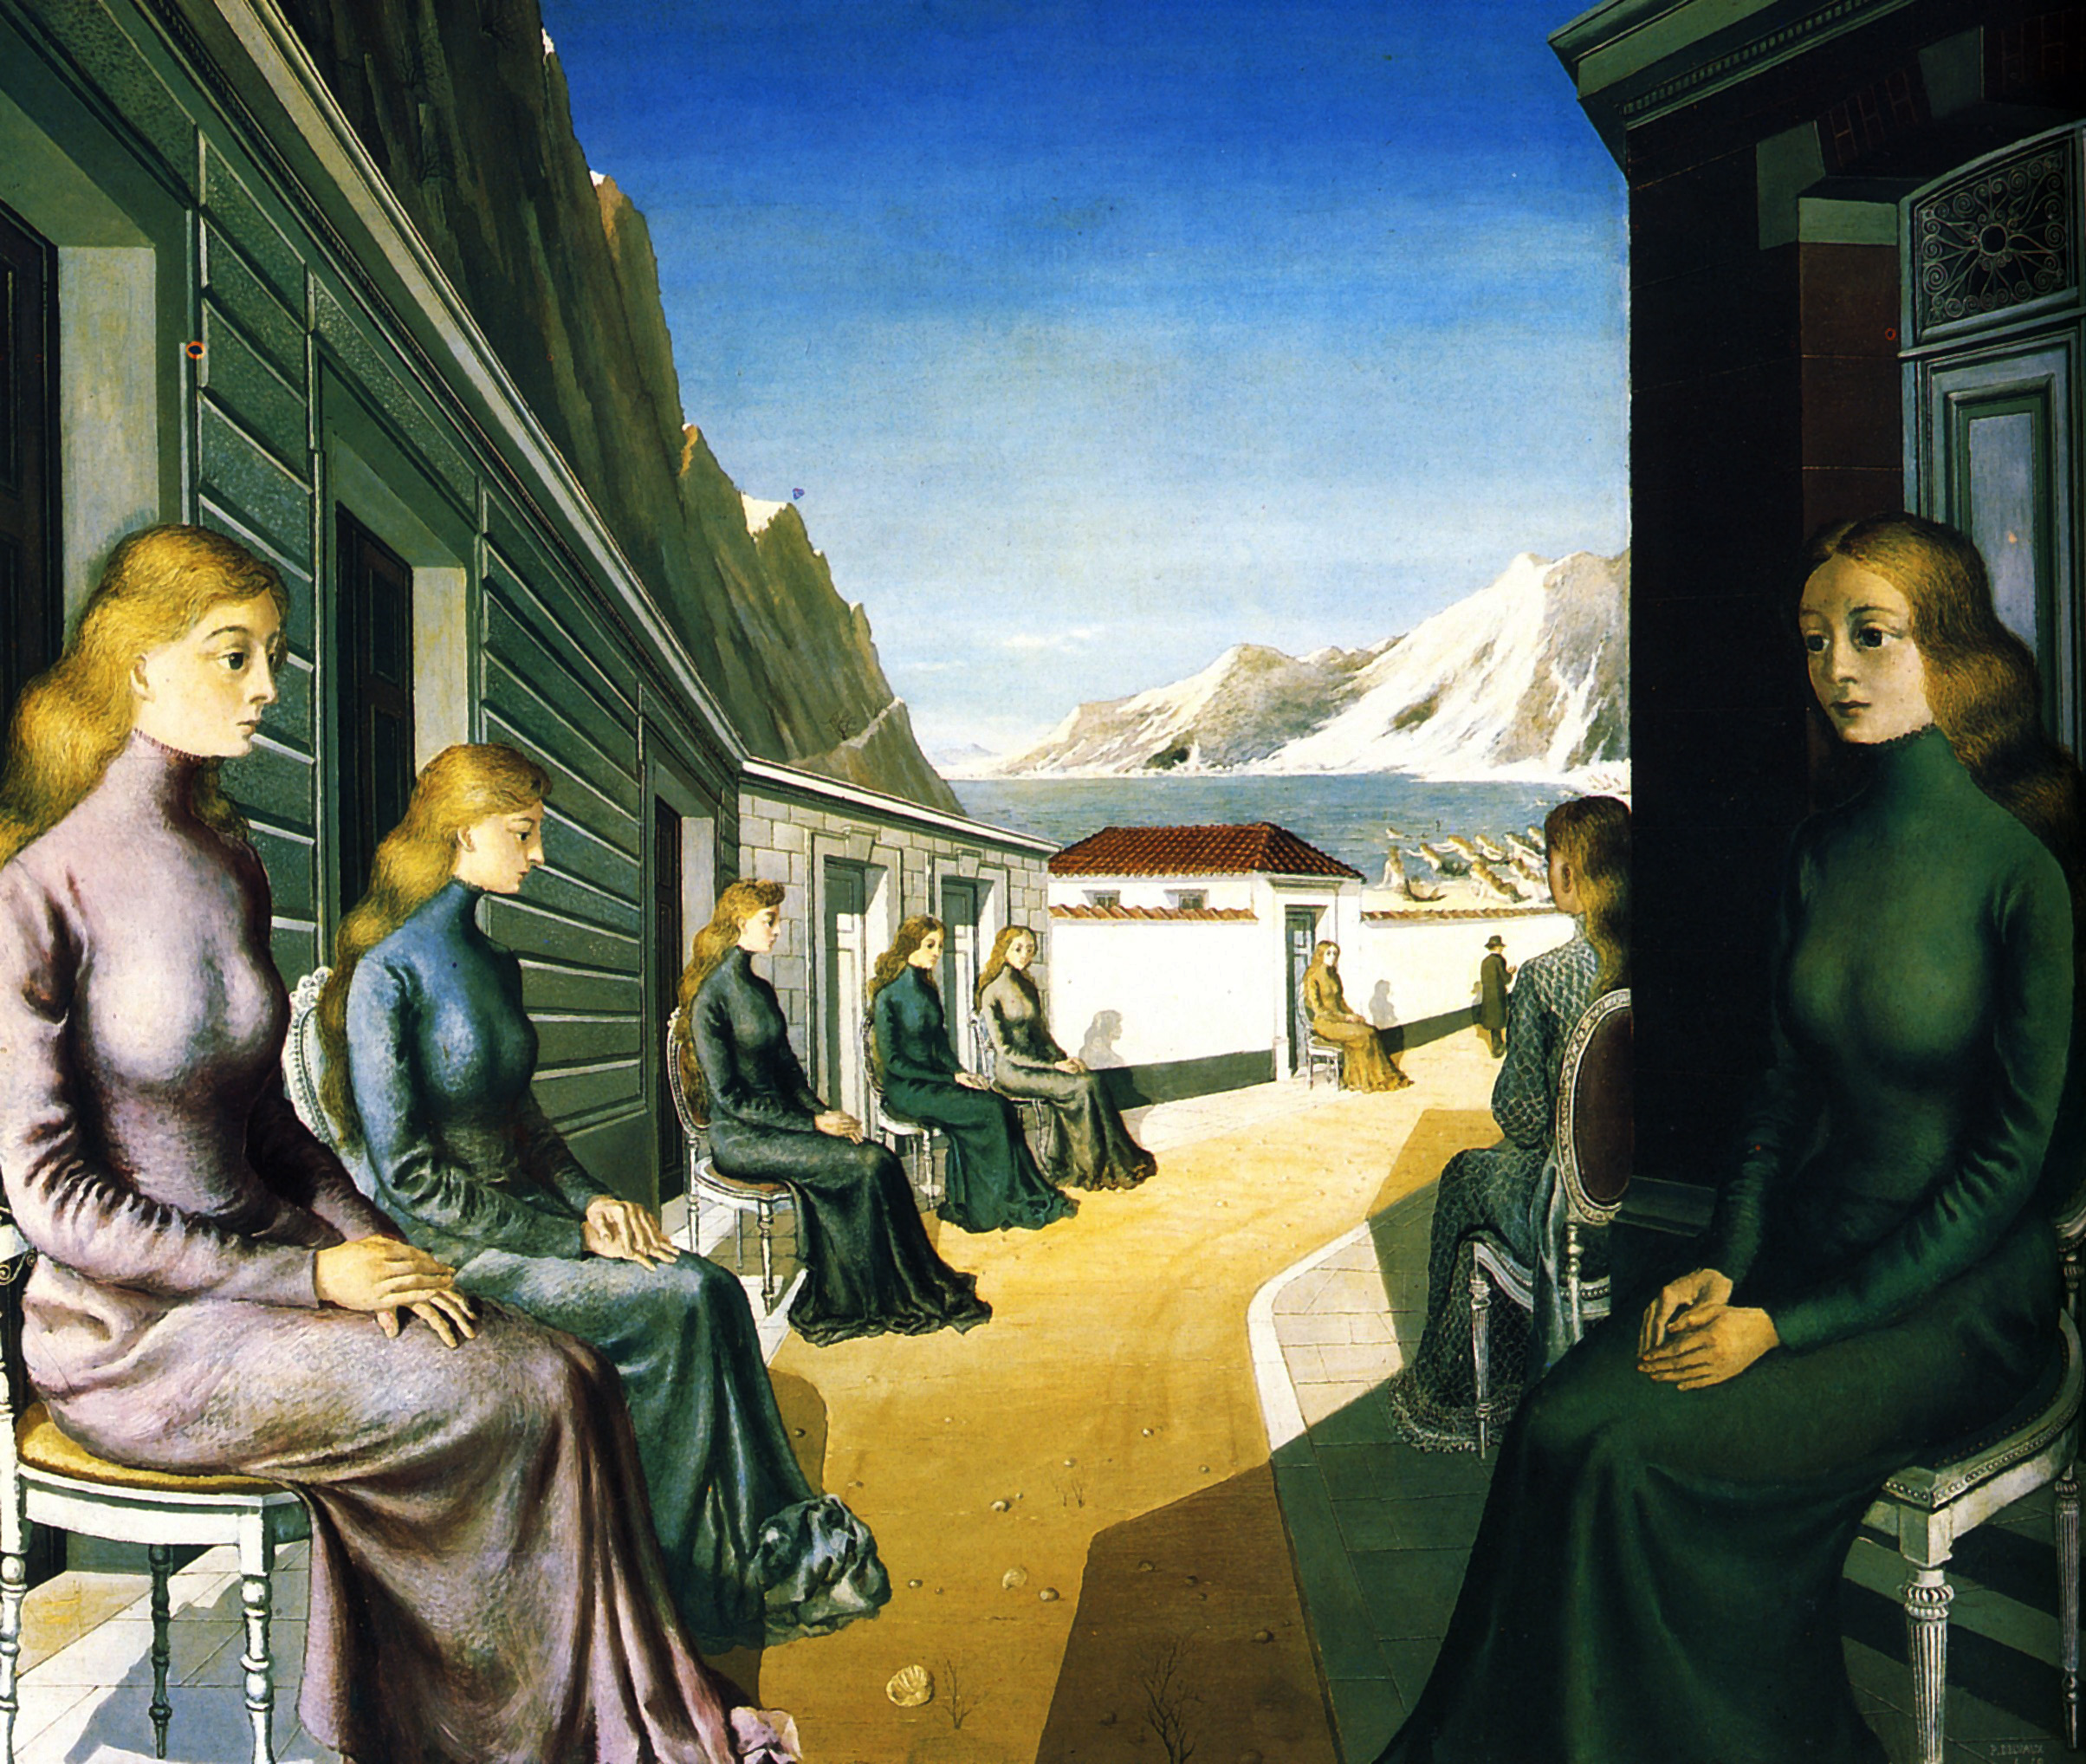 http://uploads4.wikipaintings.org/images/paul-delvaux/the-village-of-the-sirens-1942.jpg